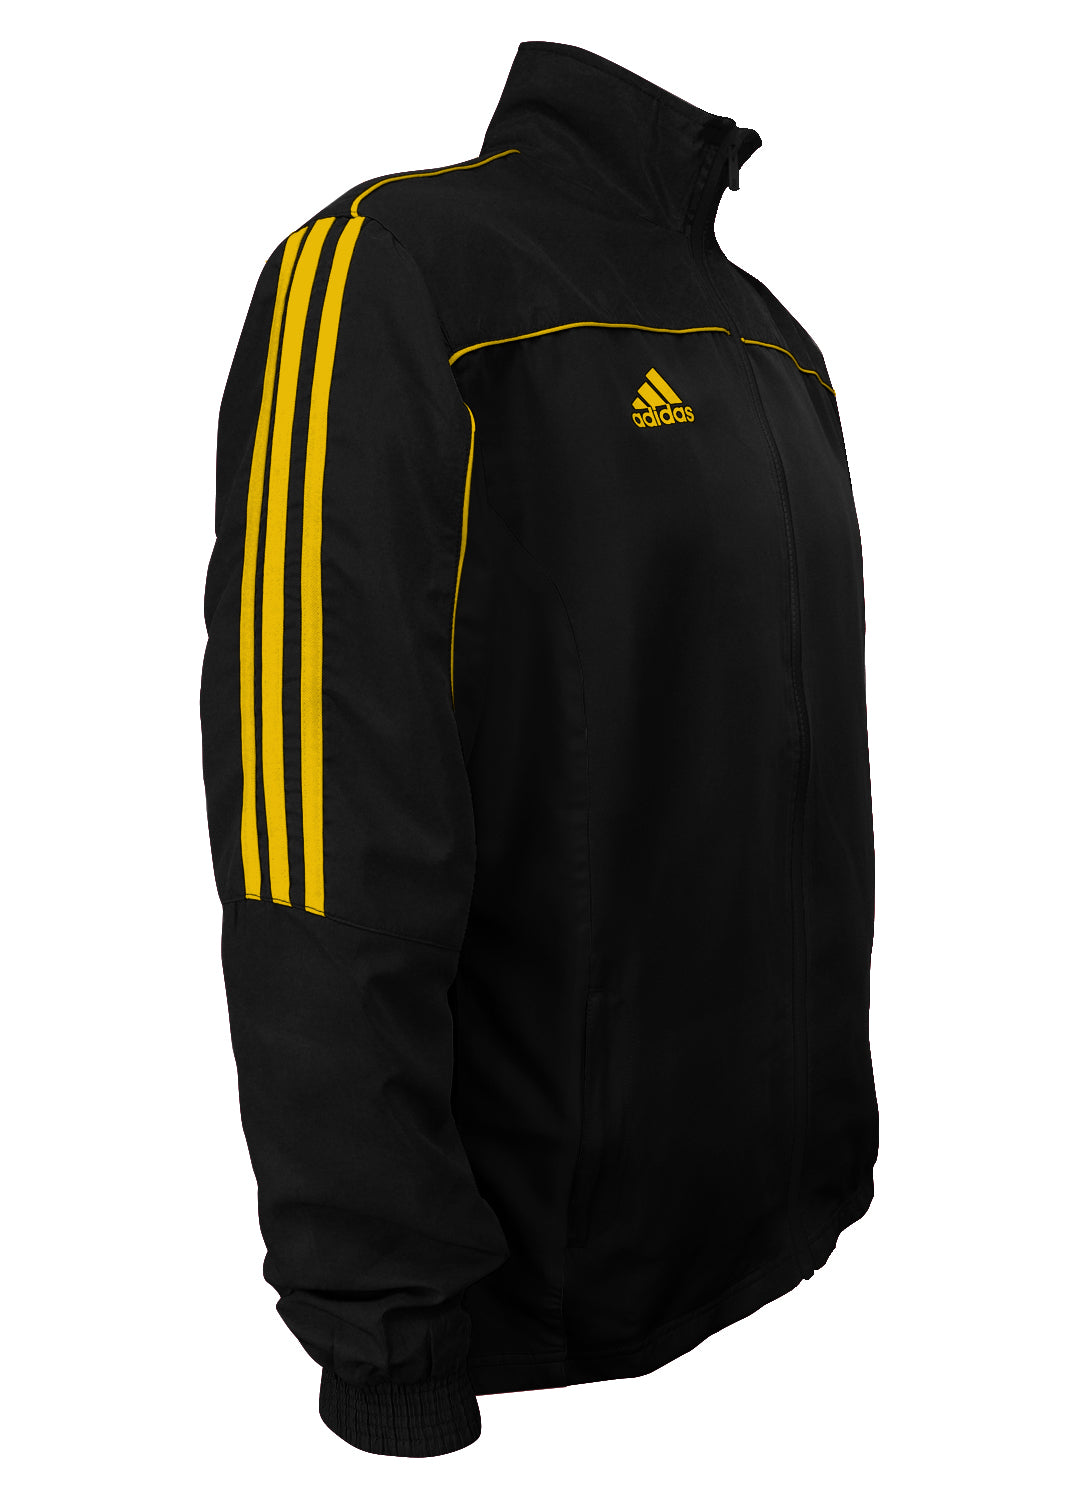 adidas Black with Gold Stripes Windbreaker Style Team Jacket Side View